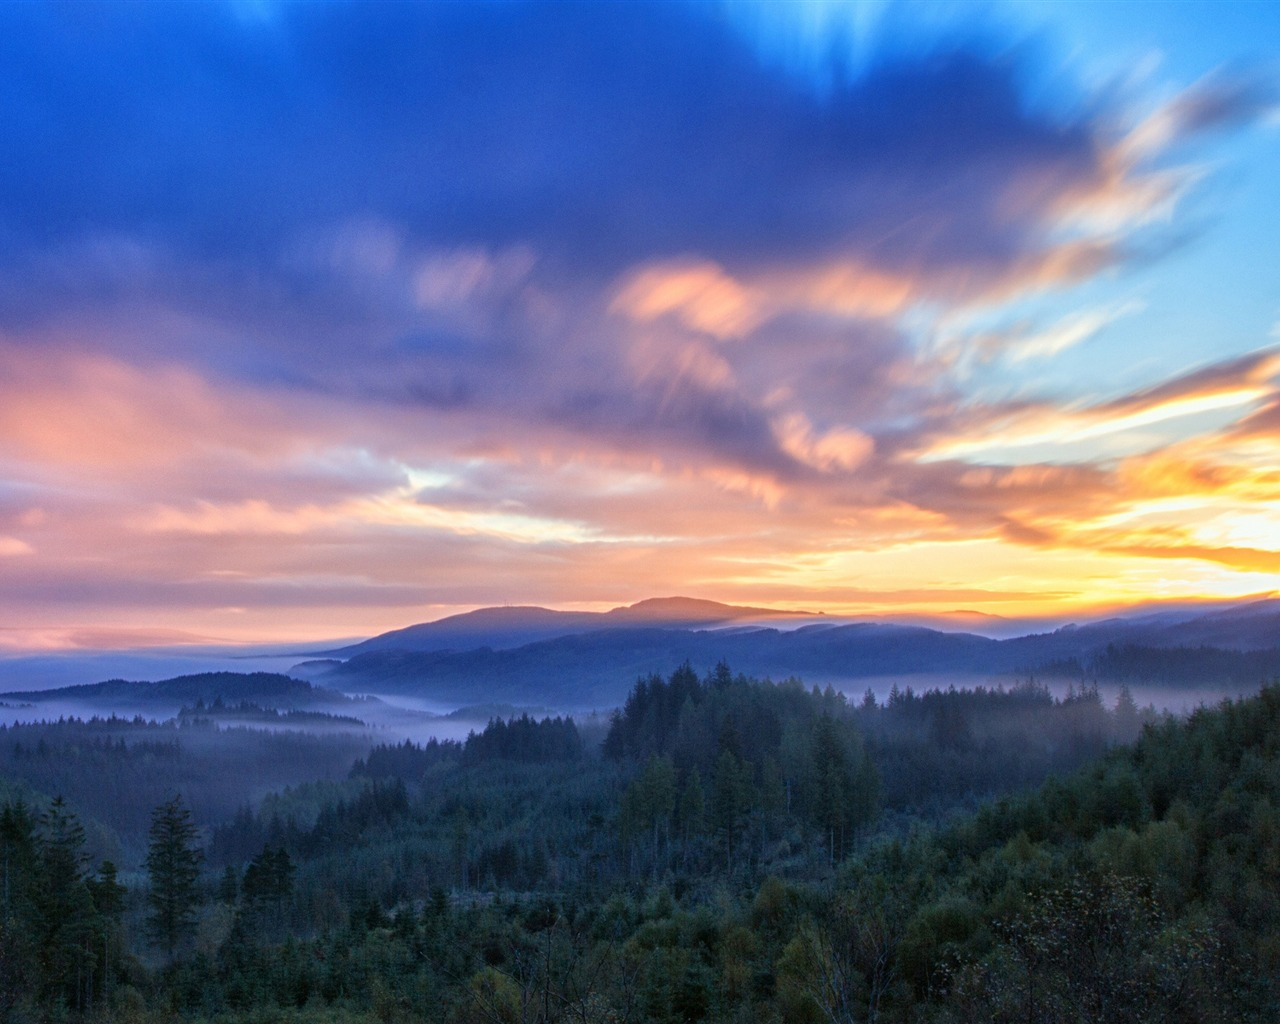 Forest sunrise clouds-Beautiful landscape wallpaper - 1280x1024 wallpaper download